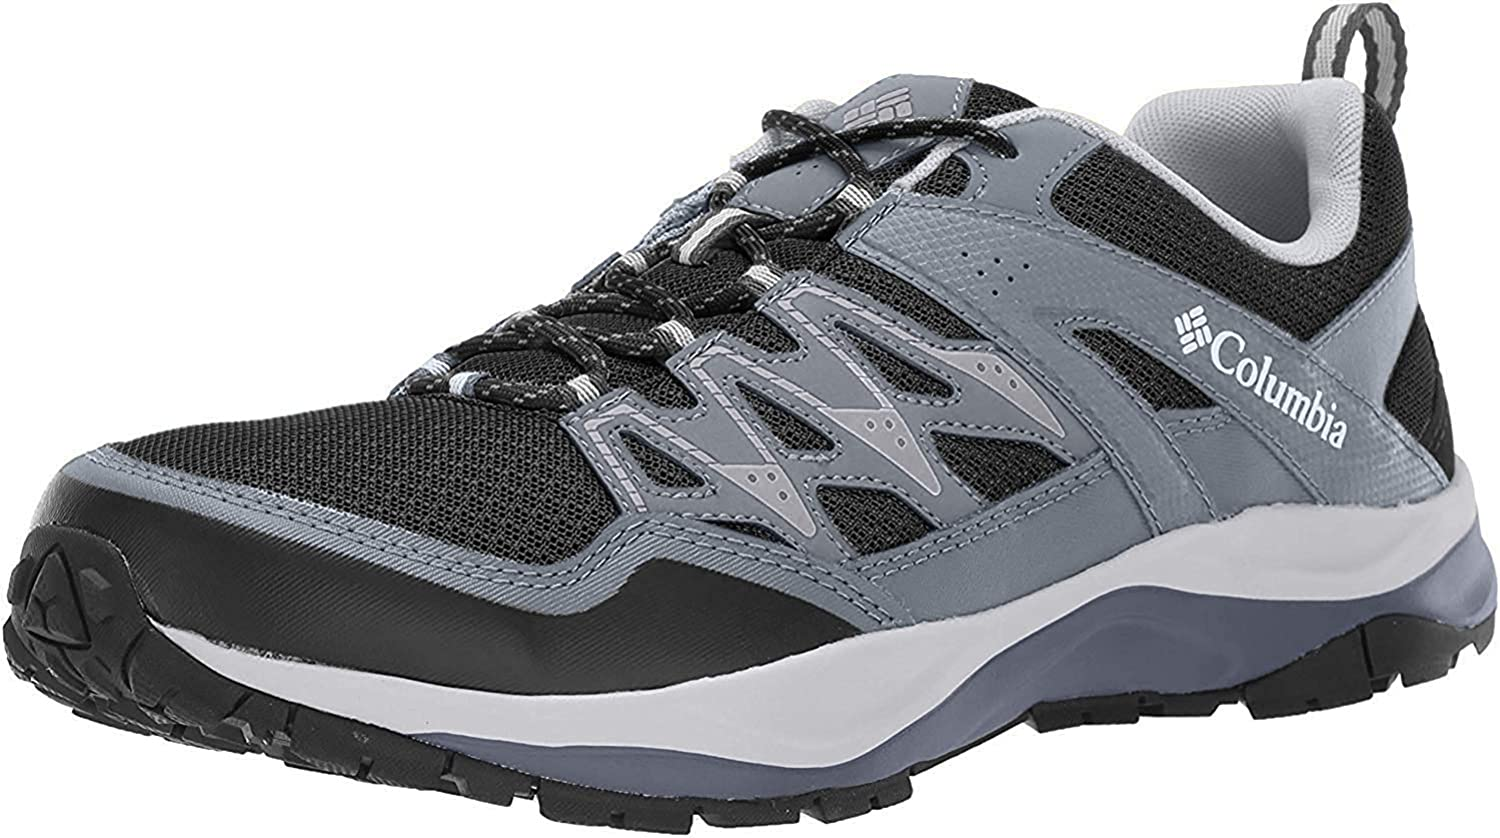 Columbia Men s Wayfinder Hiking Shoe, Breathable, High-Traction Grip